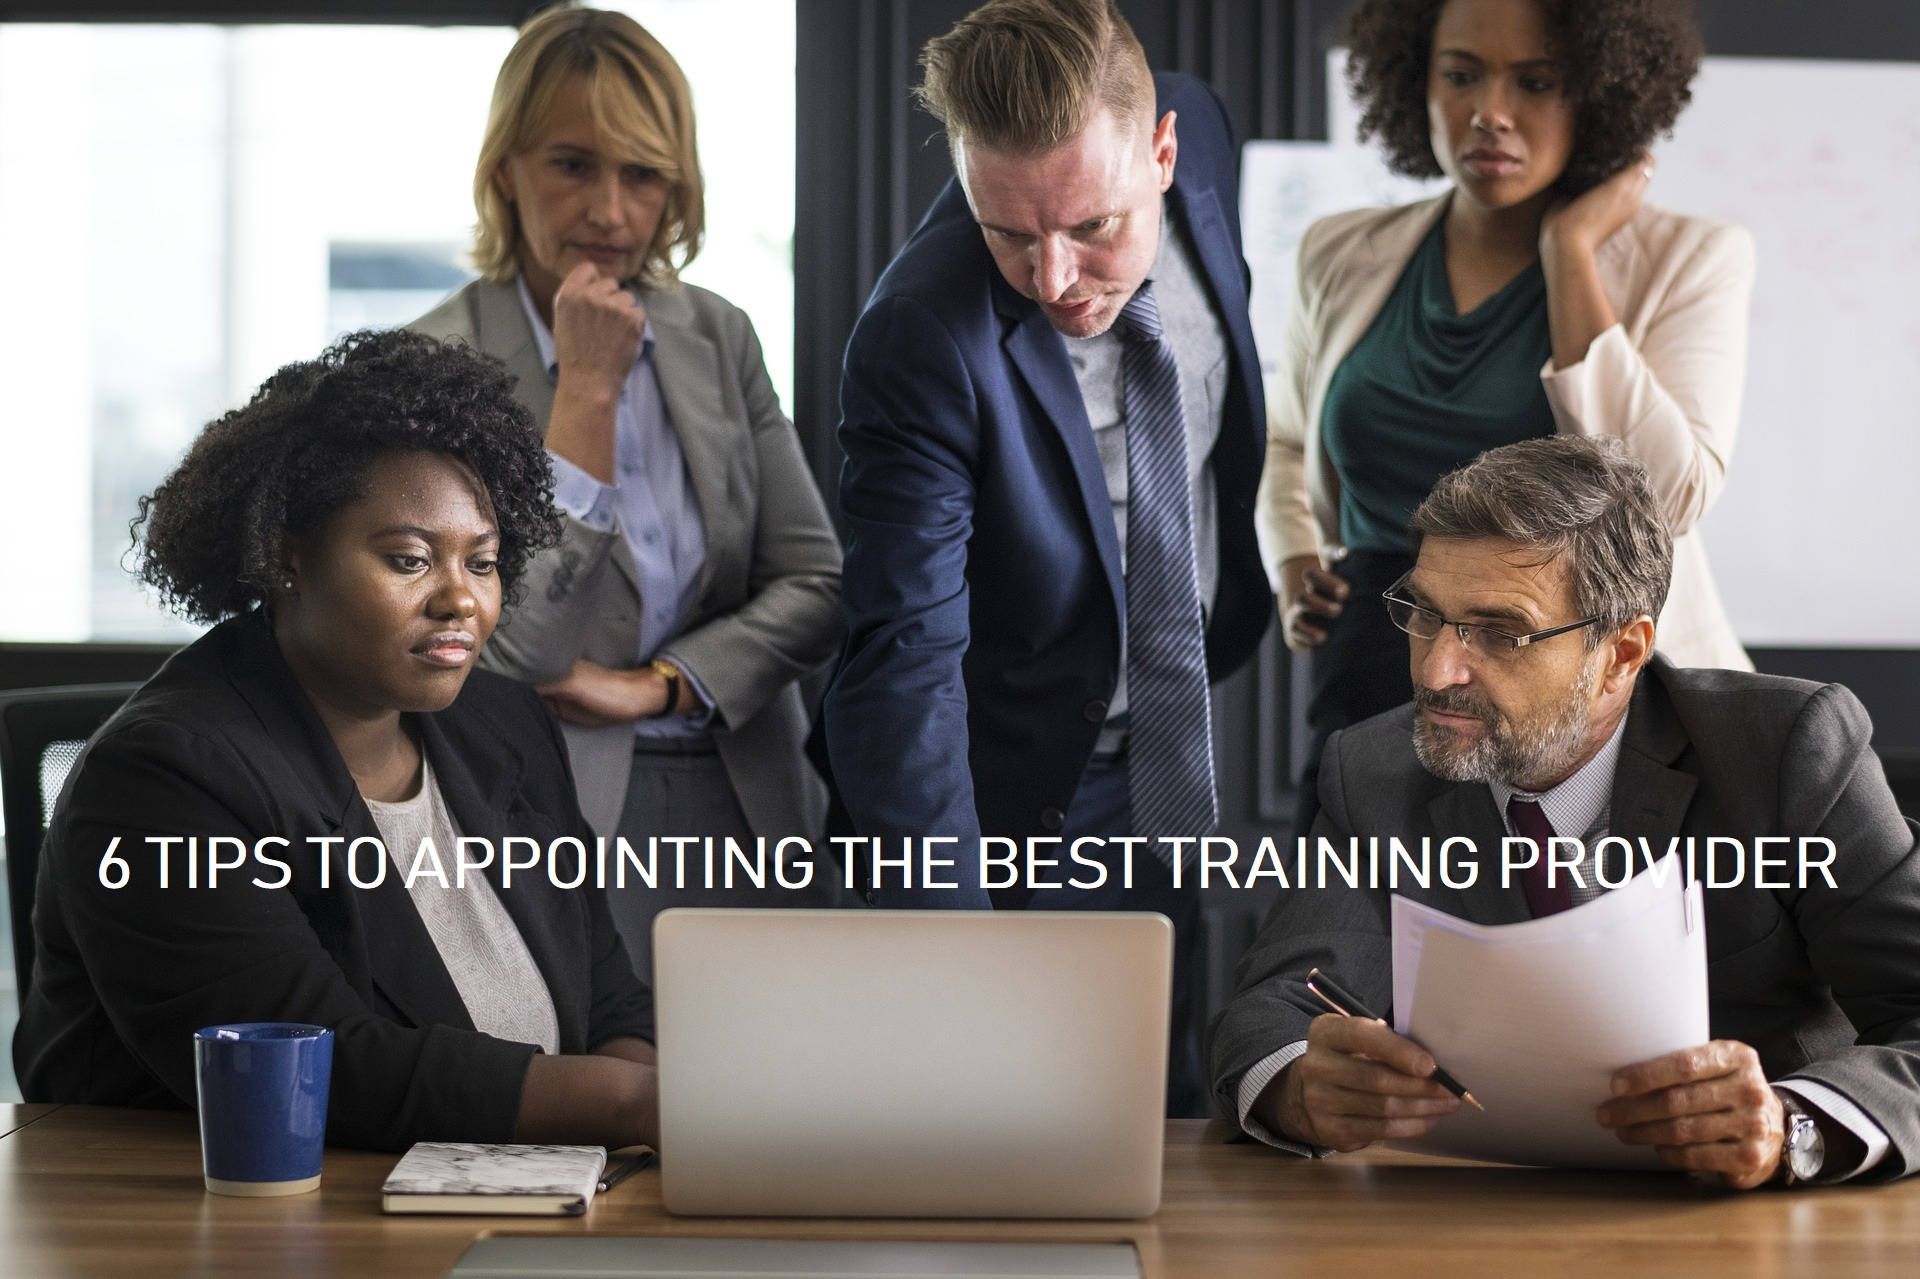 Appointing the best training provider